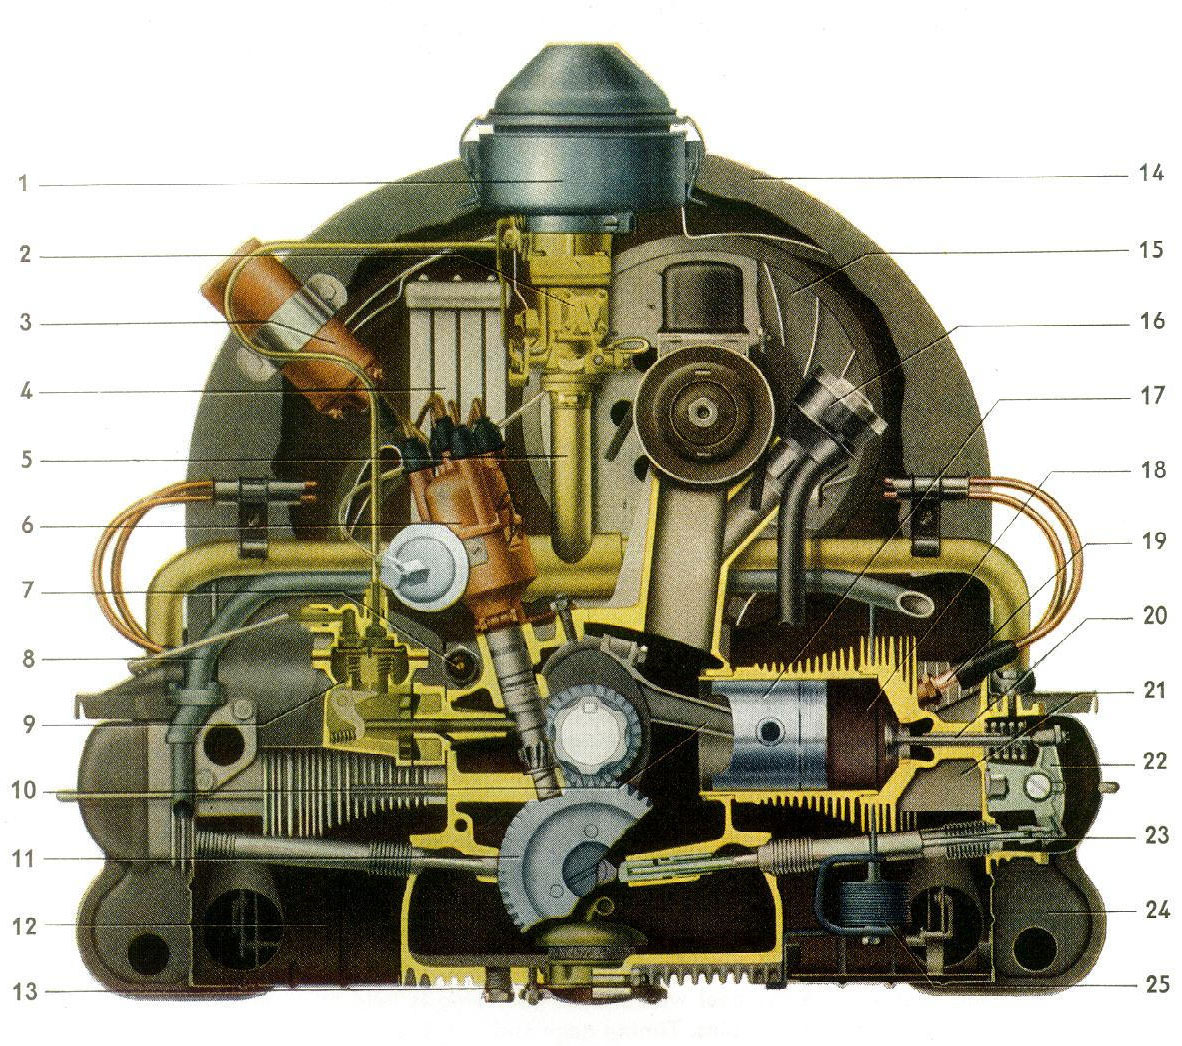 Tseriesmg blogspot together with Bug body sheet metal further T 51348 besides Viewtopic furthermore Viewtopic. on 1968 vw beetle wiring diagram